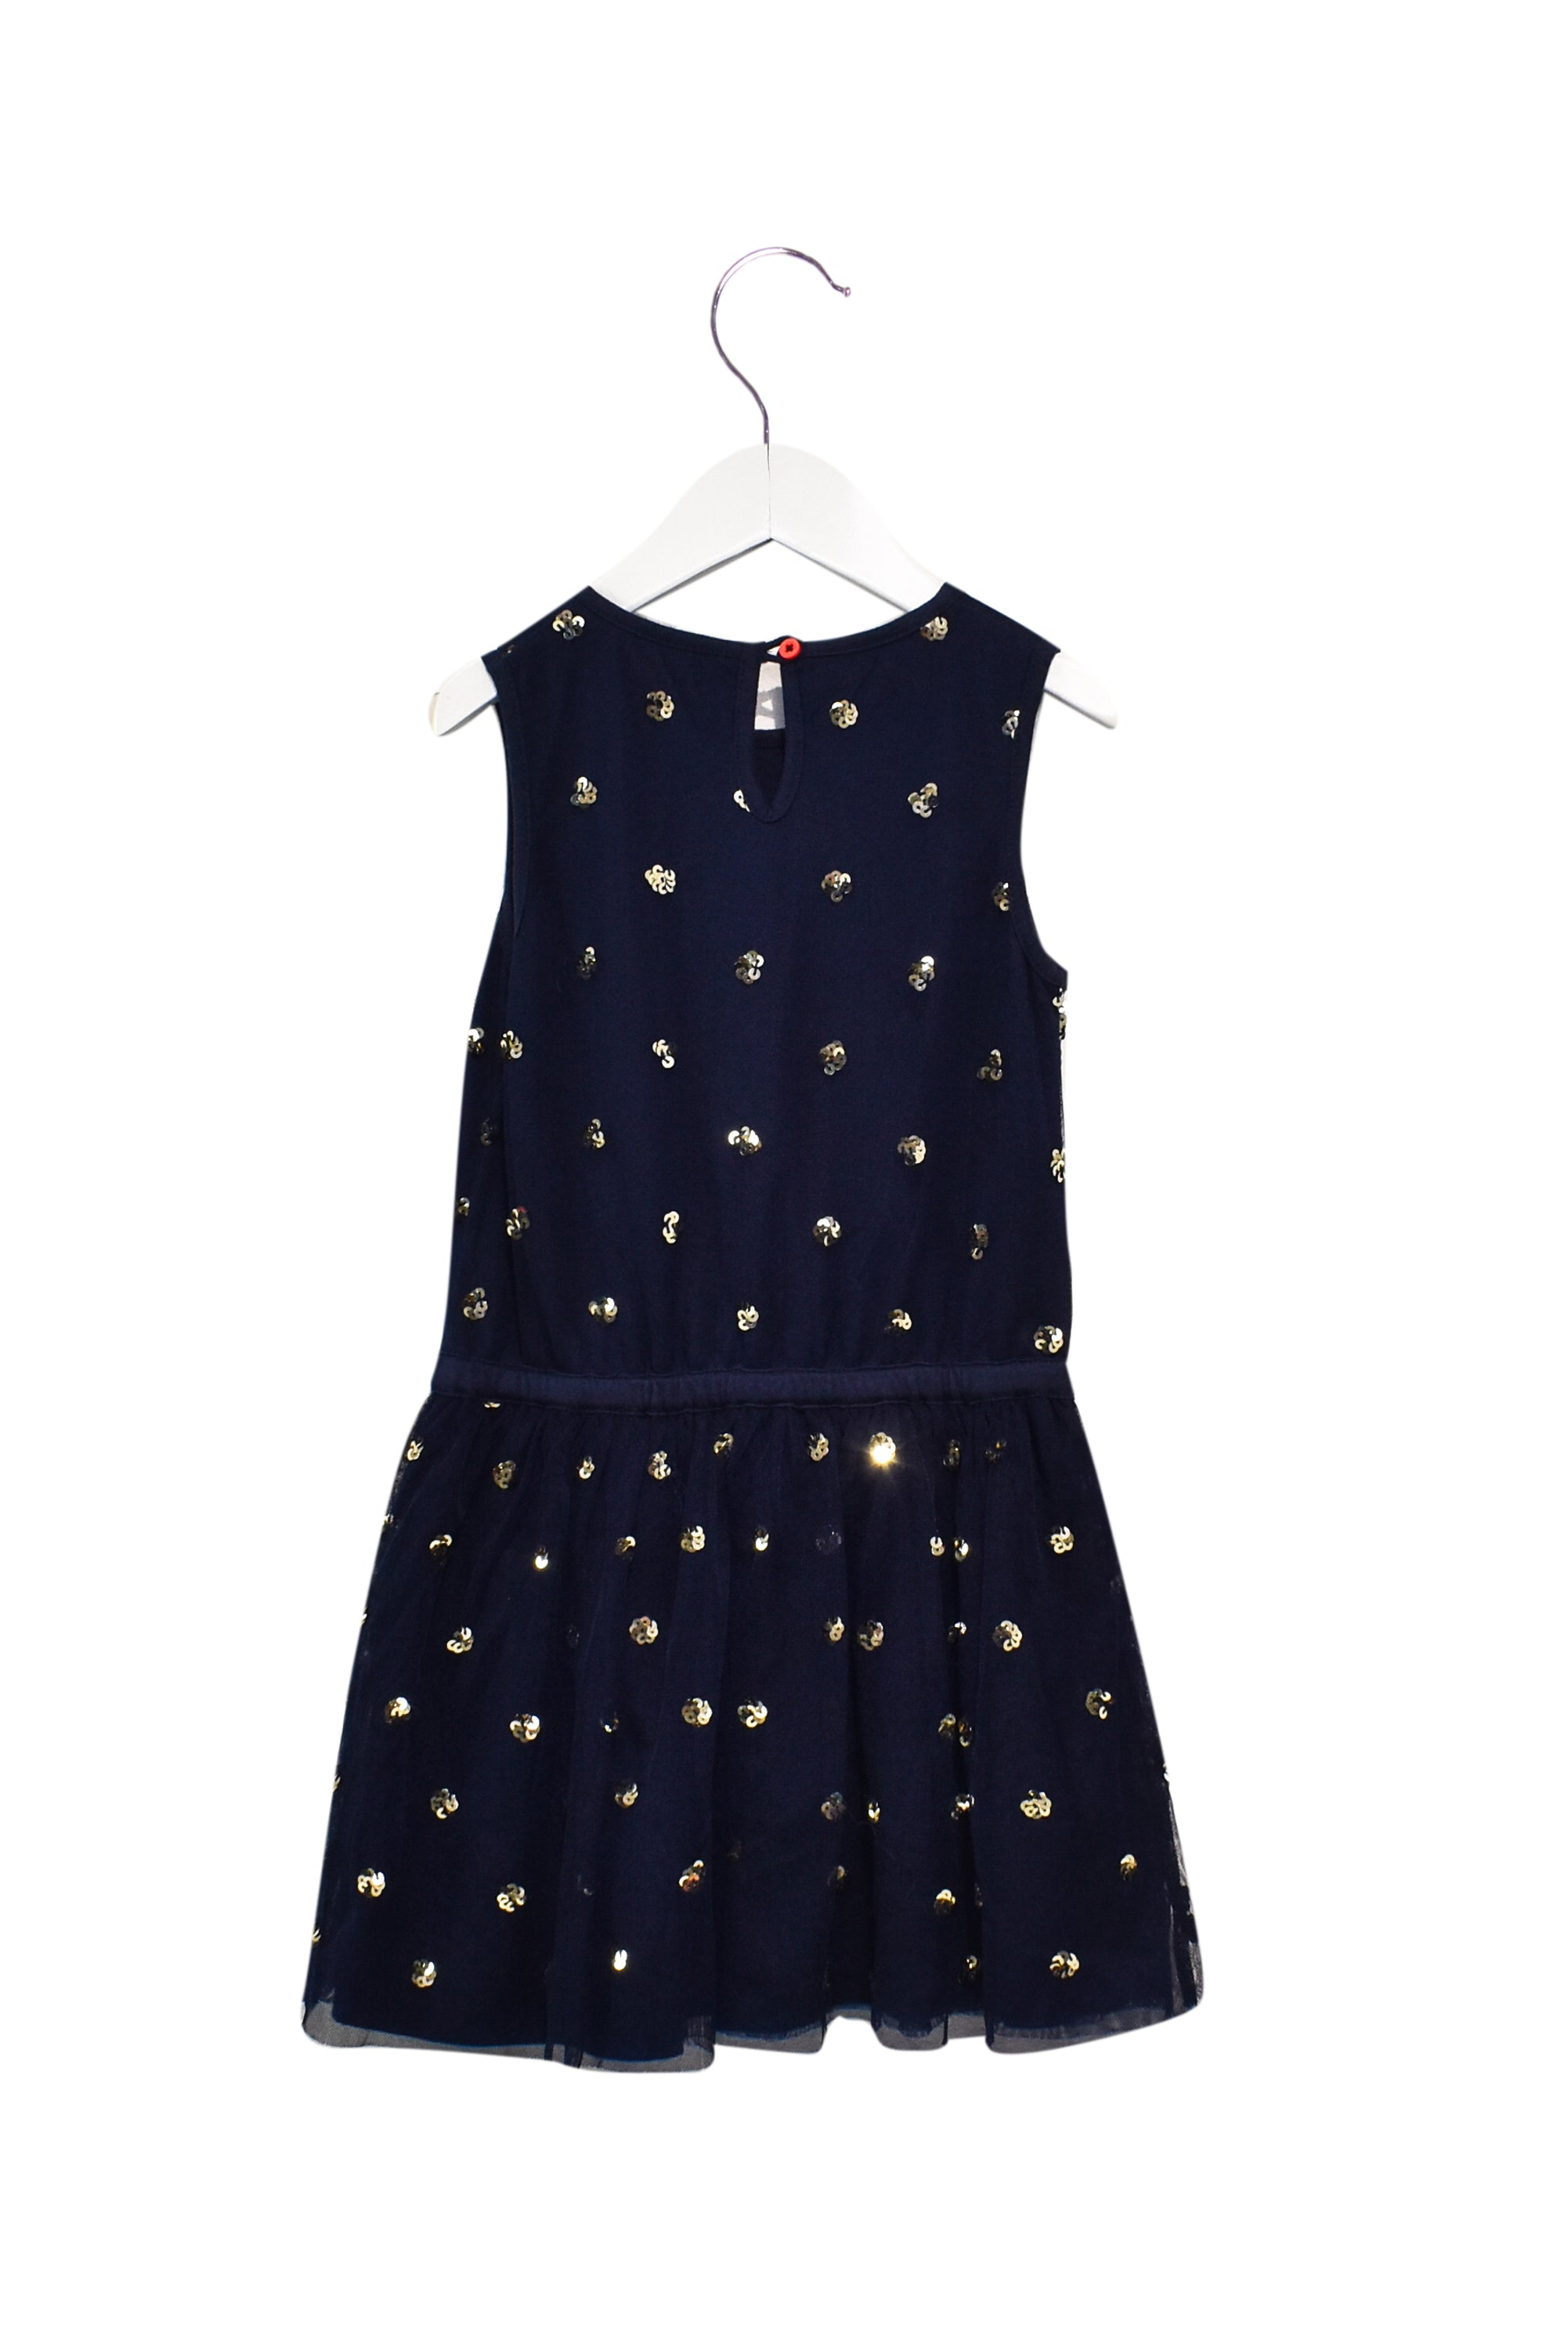 10028320 Boden Kids~Dress 4-5T at Retykle